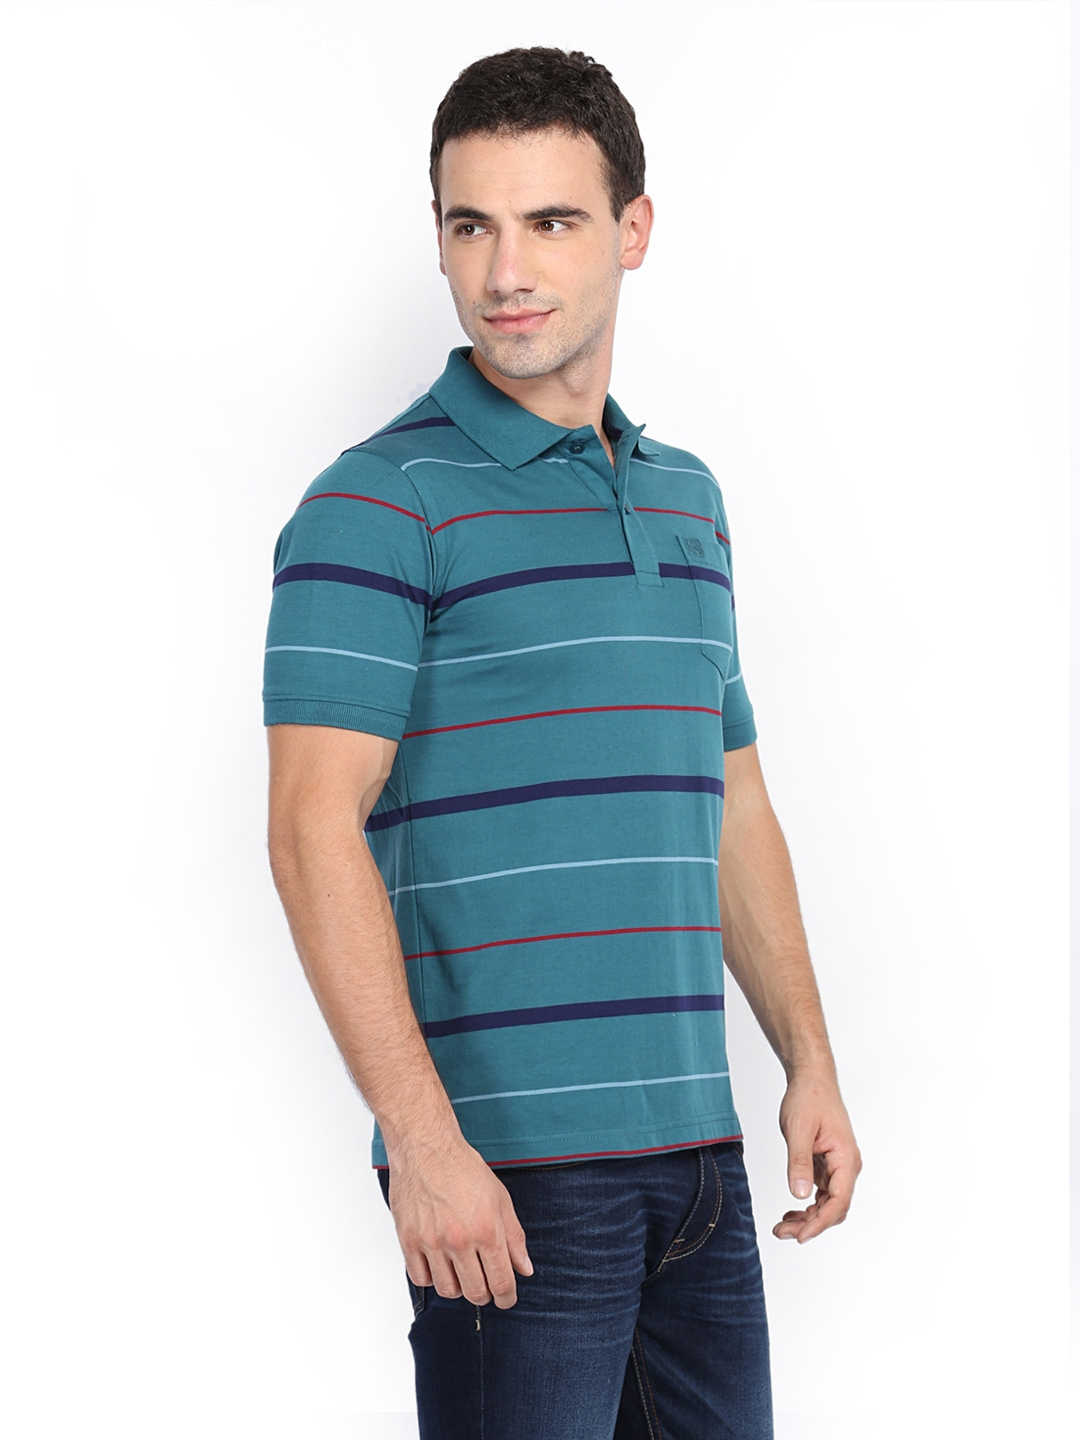 Myntra van heusen men teal blue striped polo t shirt for Mens teal polo shirt